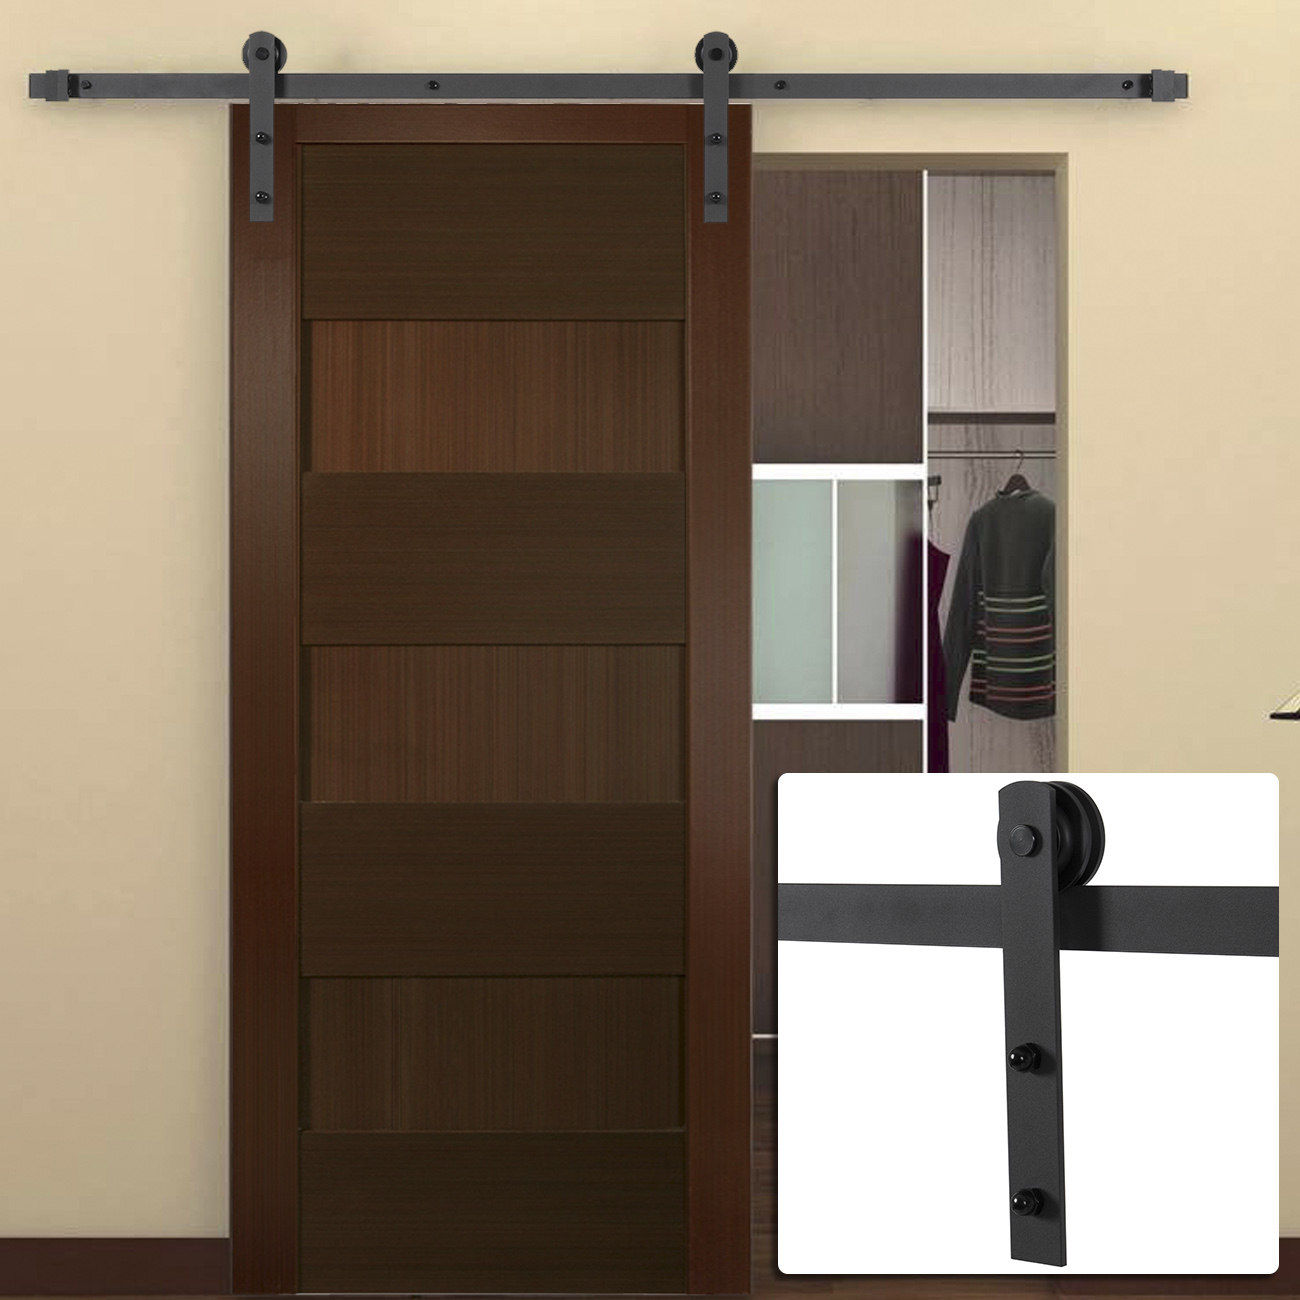 6ft antique country style steel sliding barn door closet hardware frosted black ebay. Black Bedroom Furniture Sets. Home Design Ideas